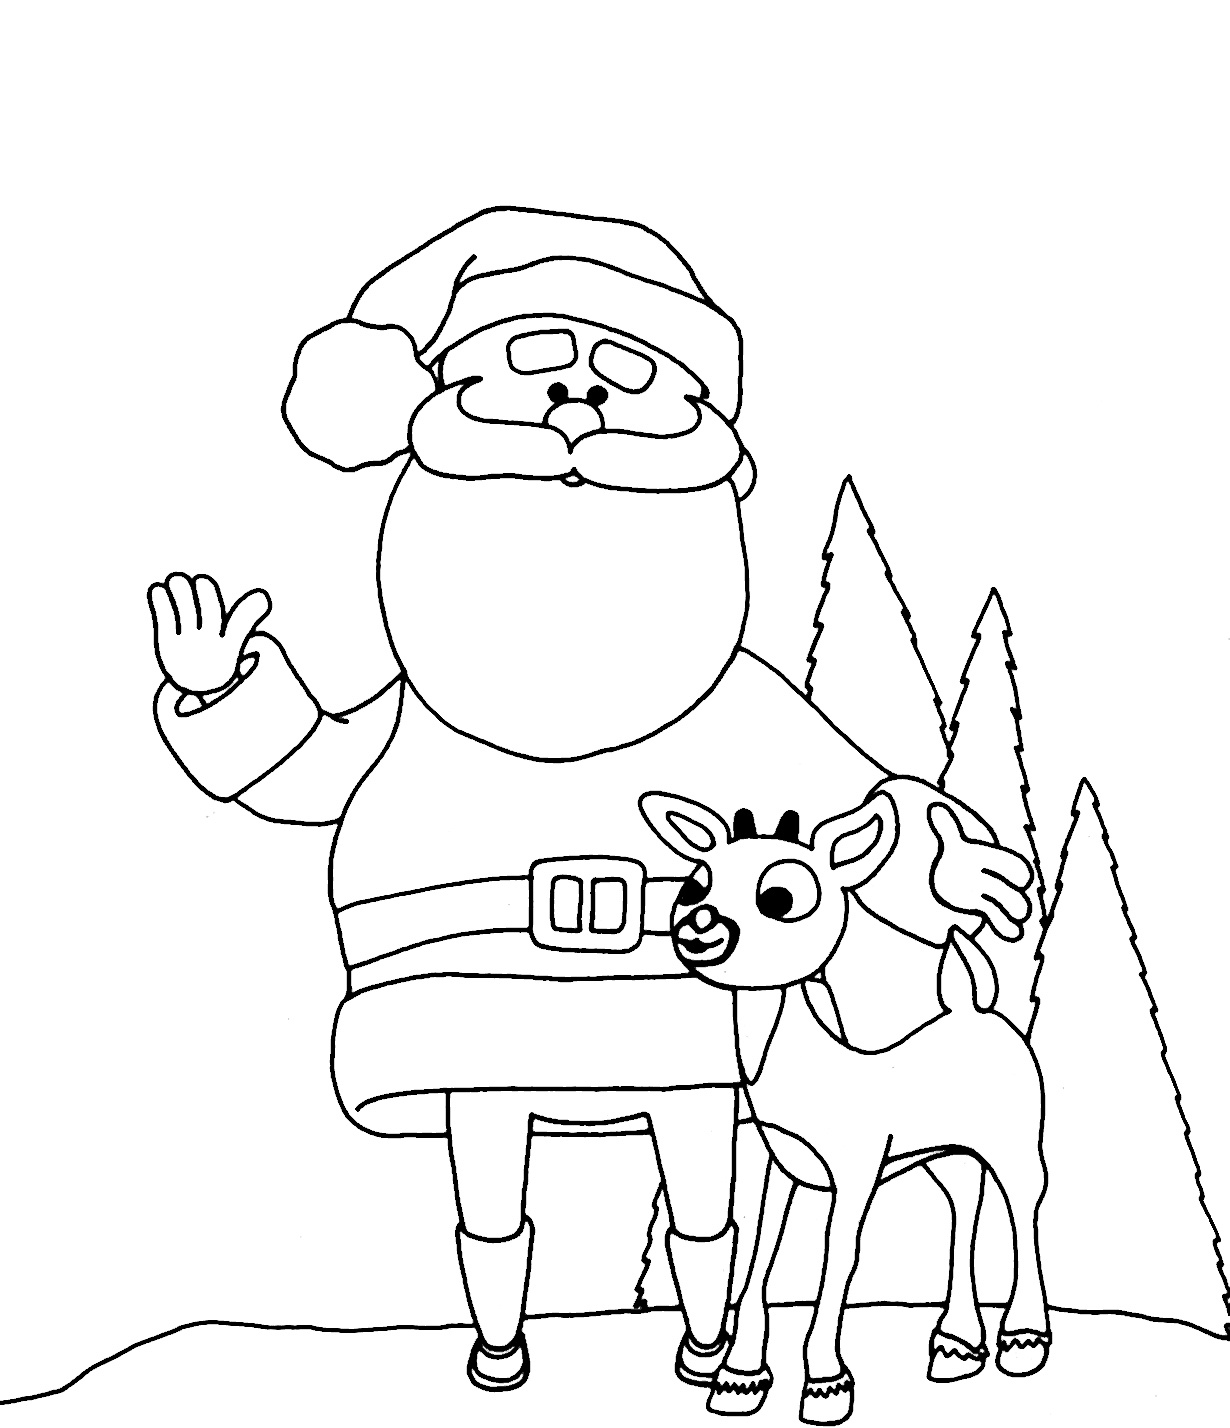 1230x1428 Best Of Free Printable Reindeer Coloring Pages For Kids Free